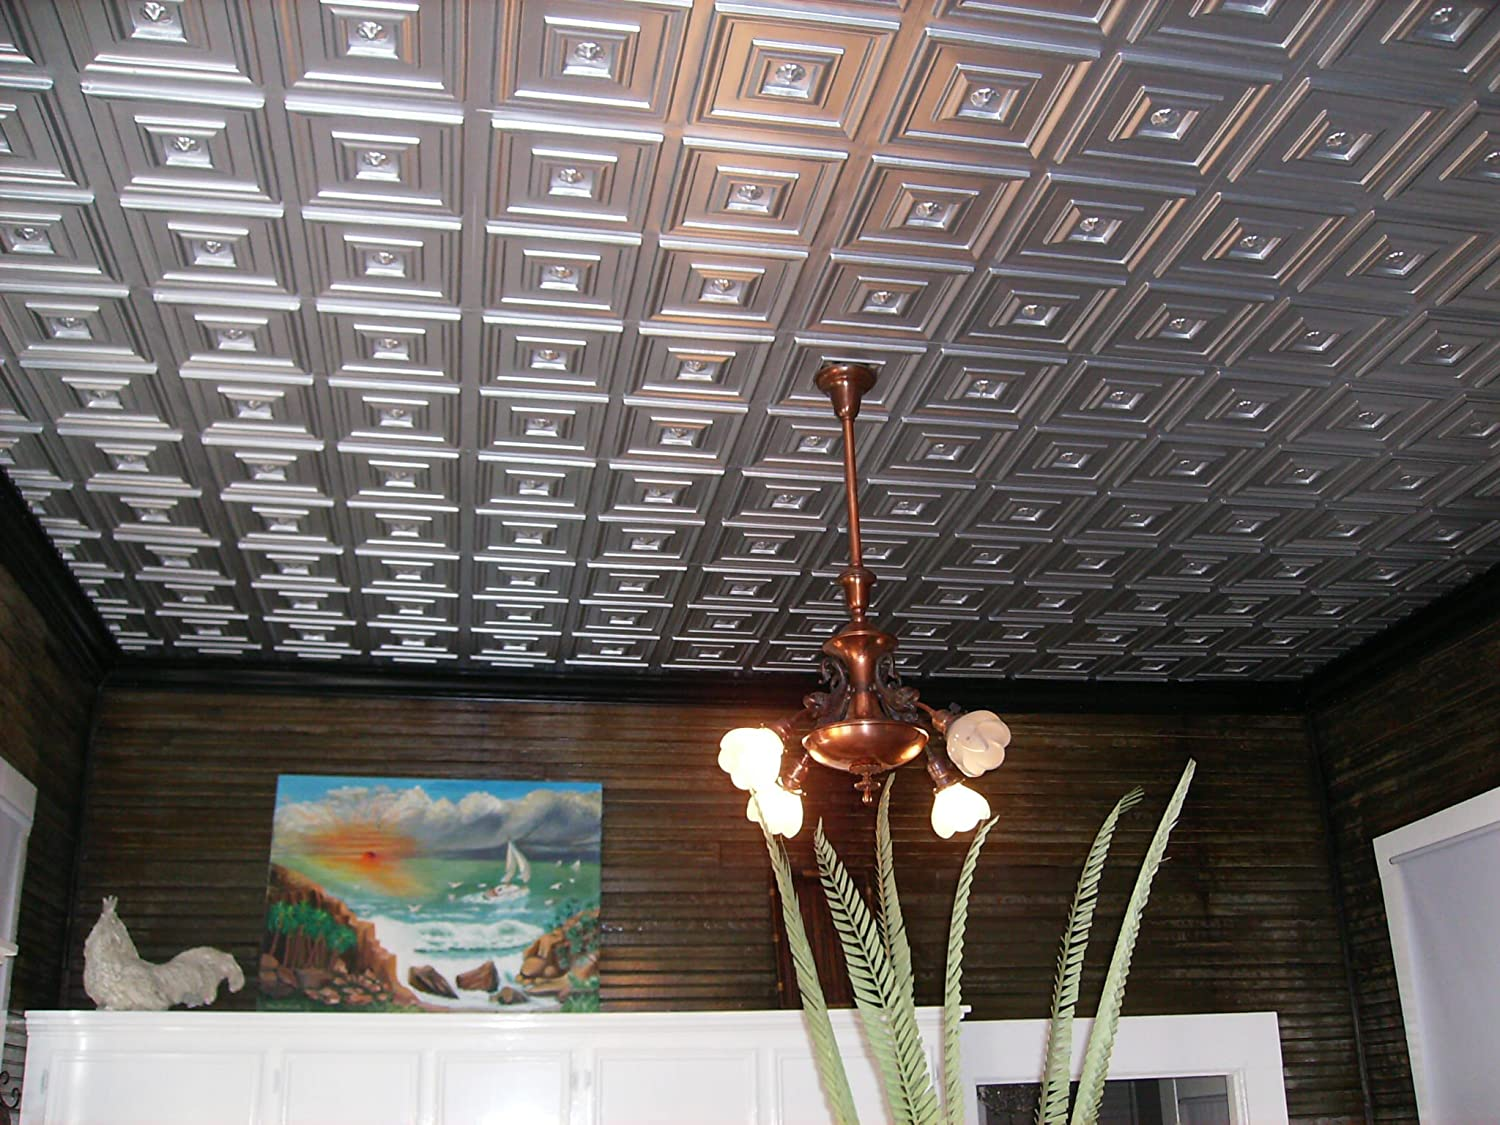 Amazon Cheap Discounted Modern Plastic Ceiling Tile Nickel